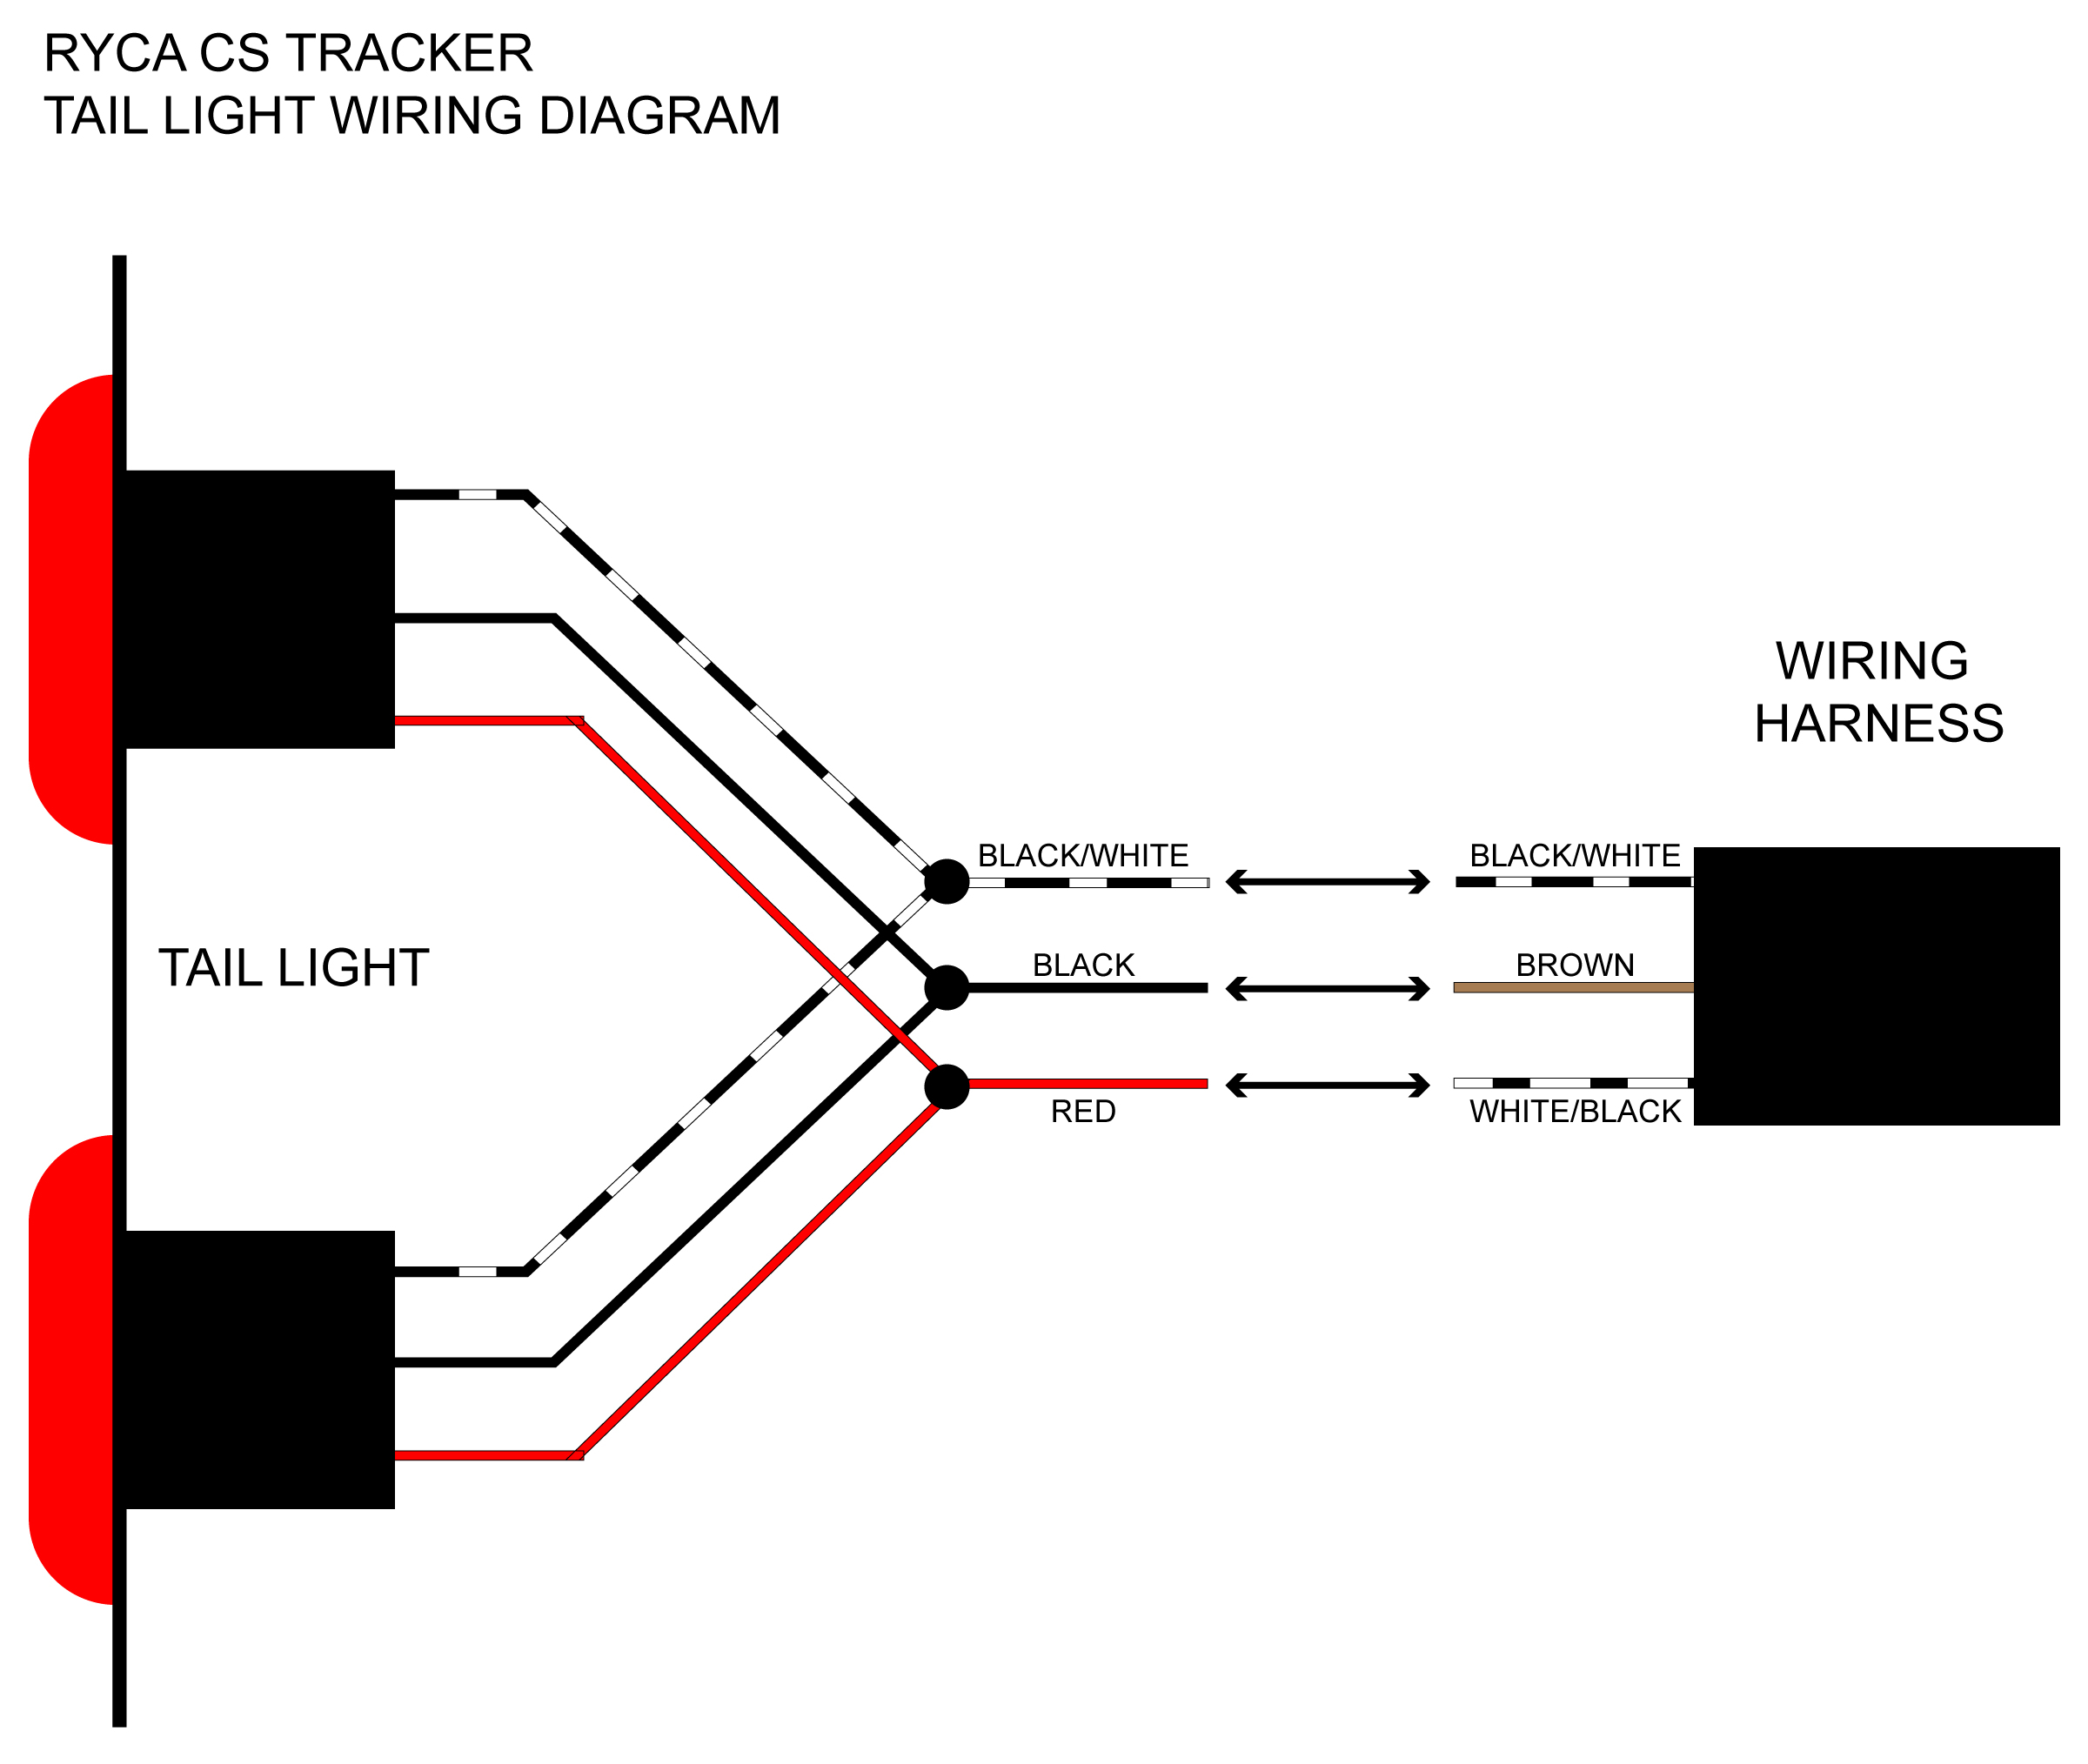 Utility Trailer Wiring Diagram Tail Lights | Wiring Diagram - 4 Way Utility Trailer Wiring Diagram